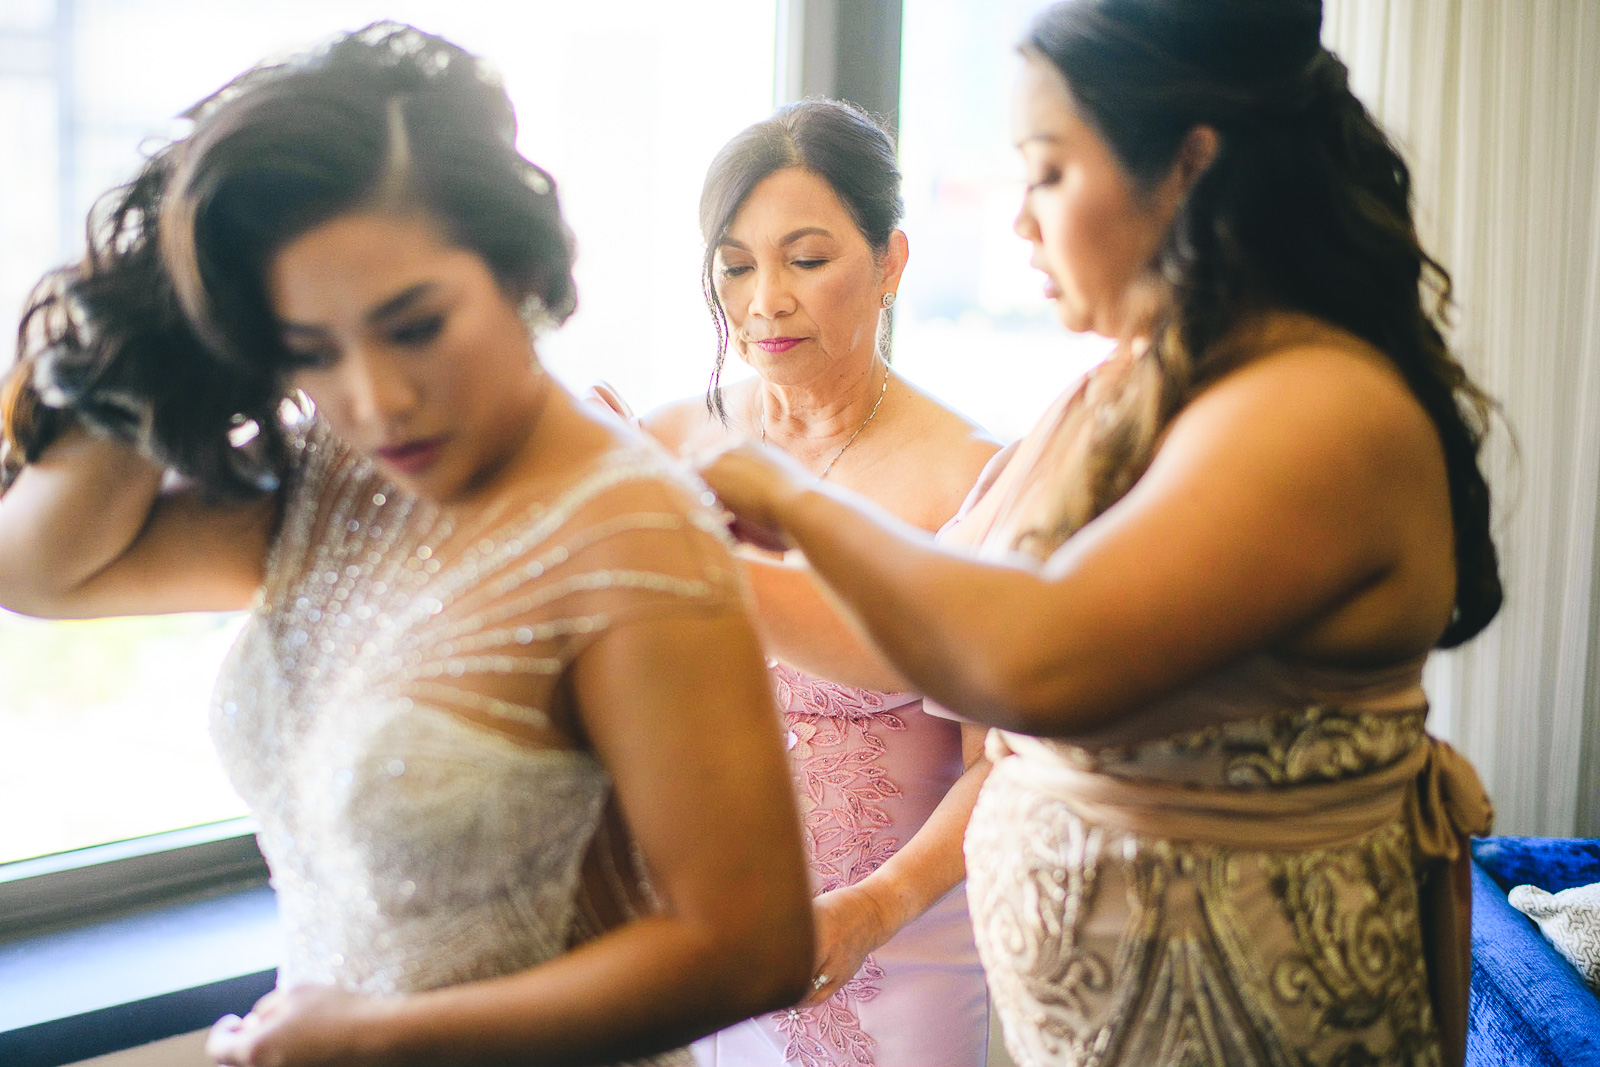 23 renaissance hotel chicago wedding photos - Renaissance Hotel Chicago Wedding Photos // Francine + RJ